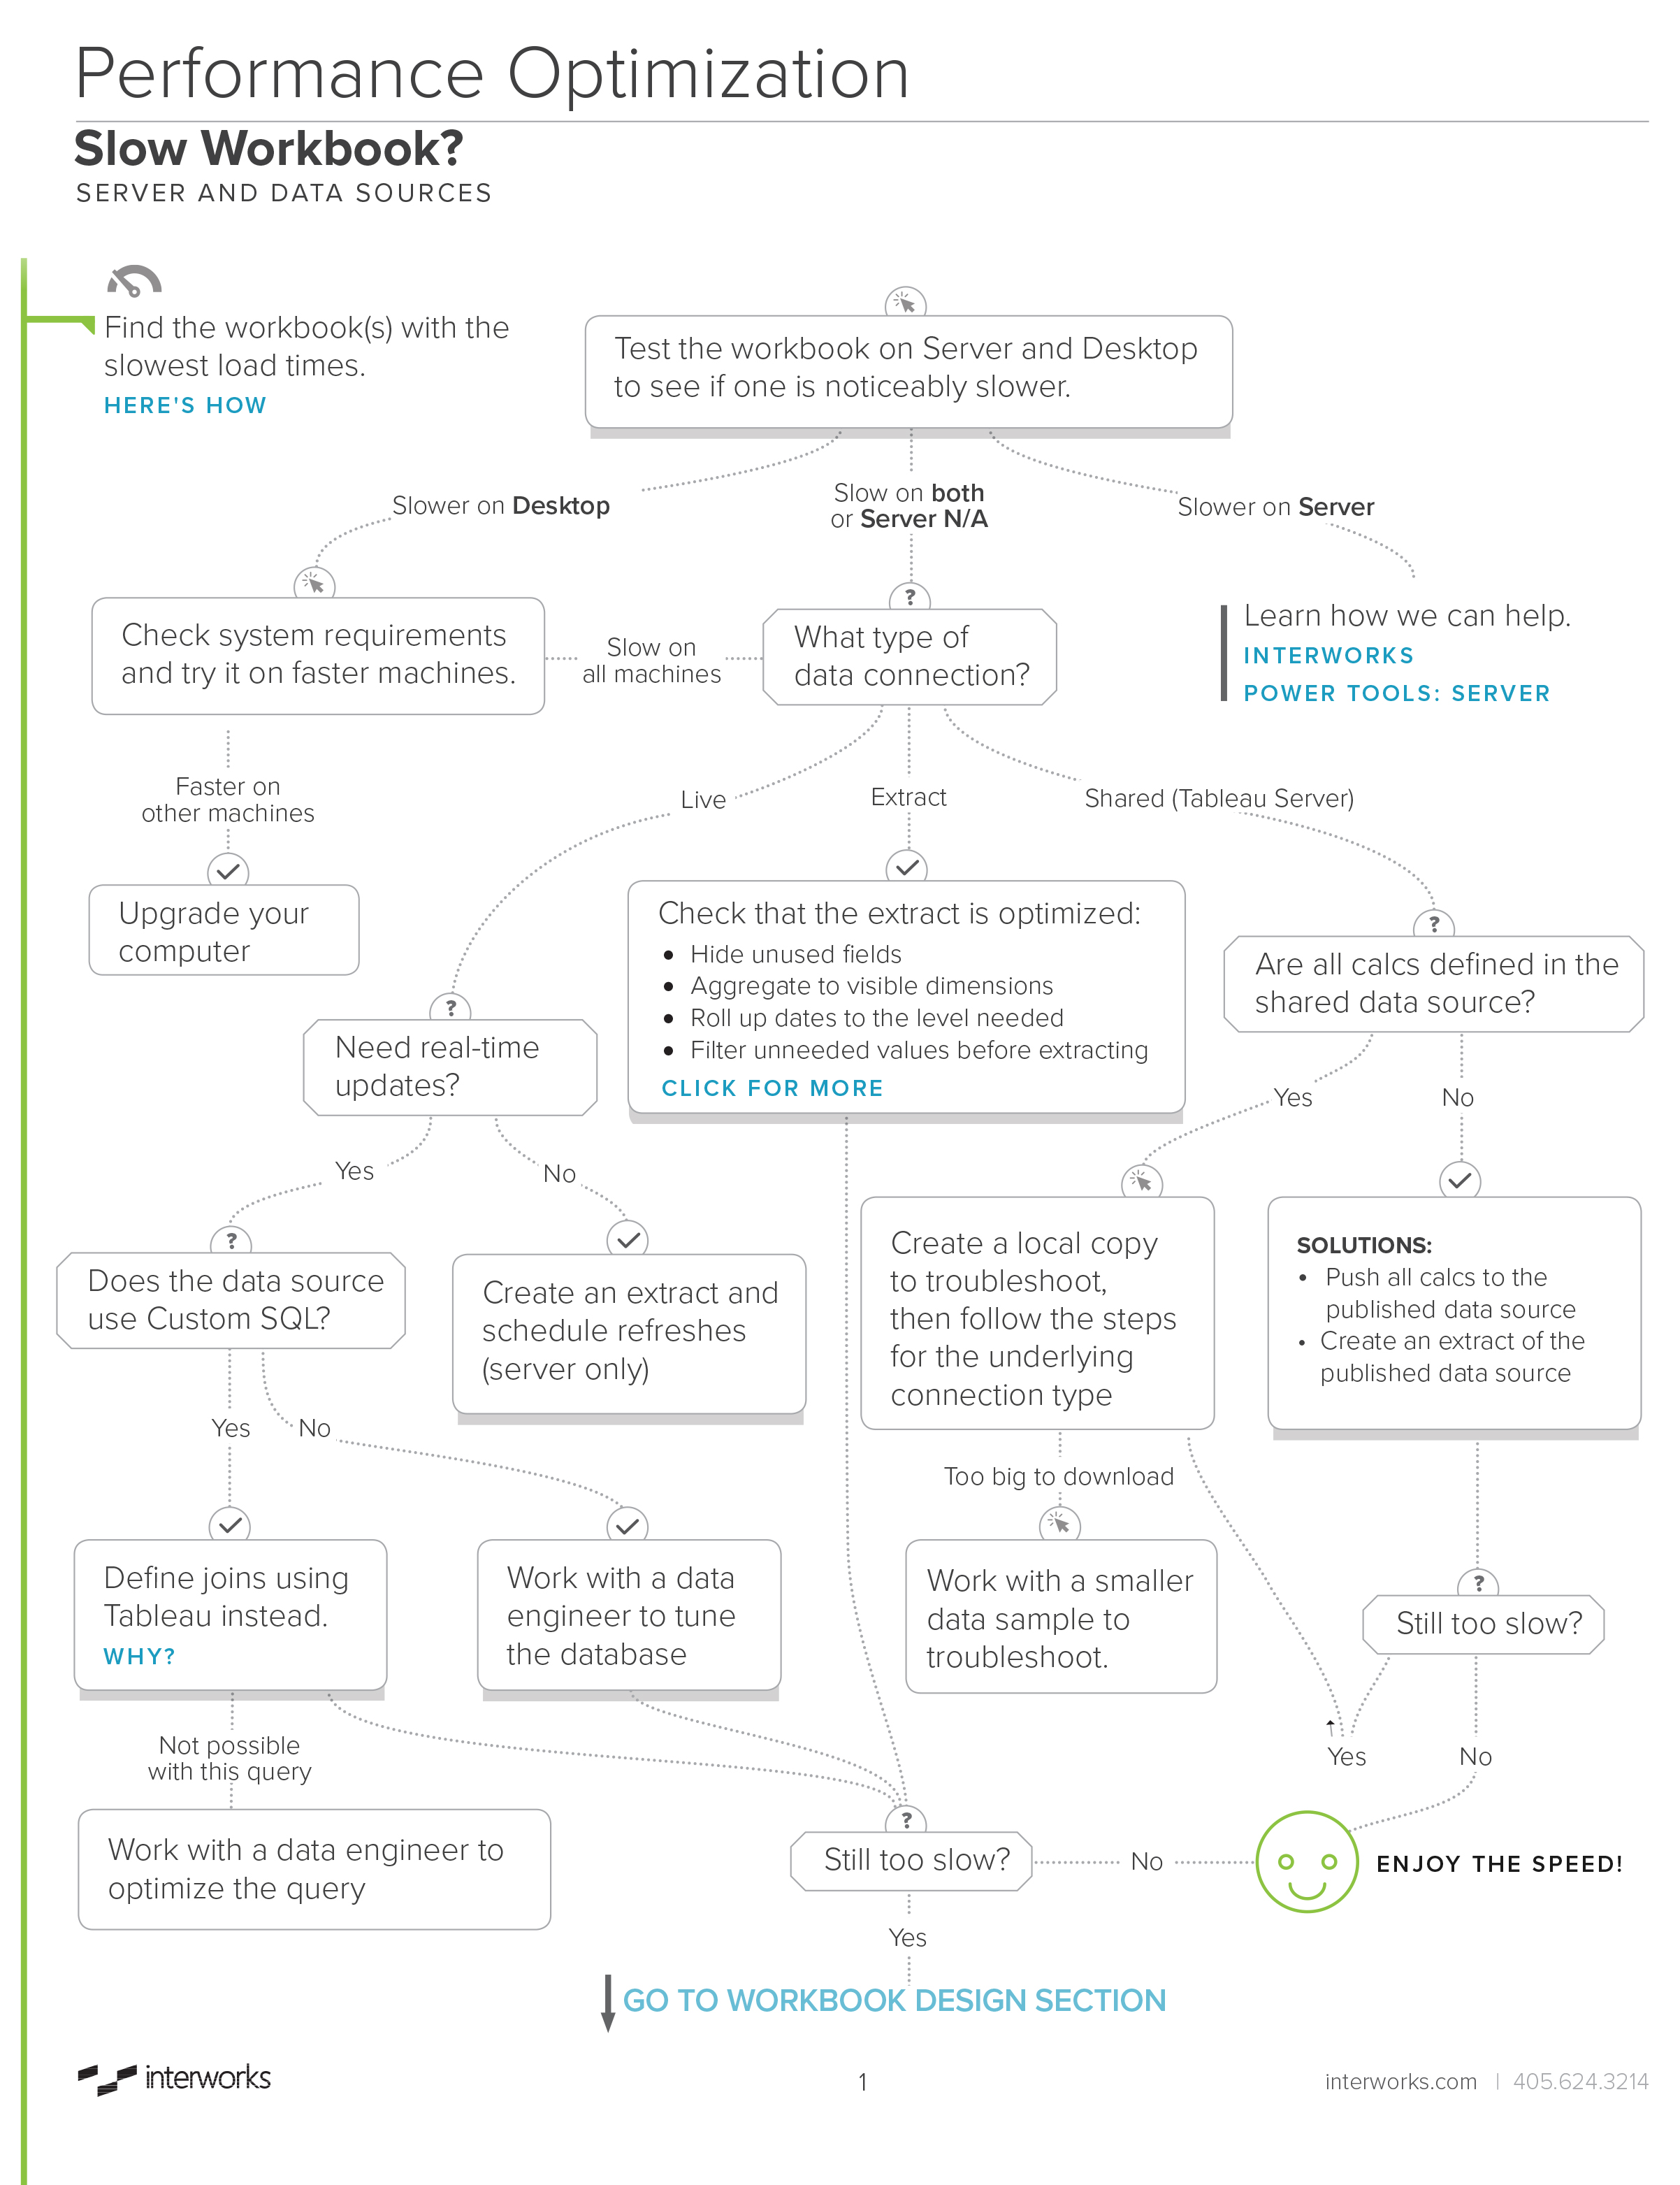 Tableau Performance Optimization Flow Chart - Page 1